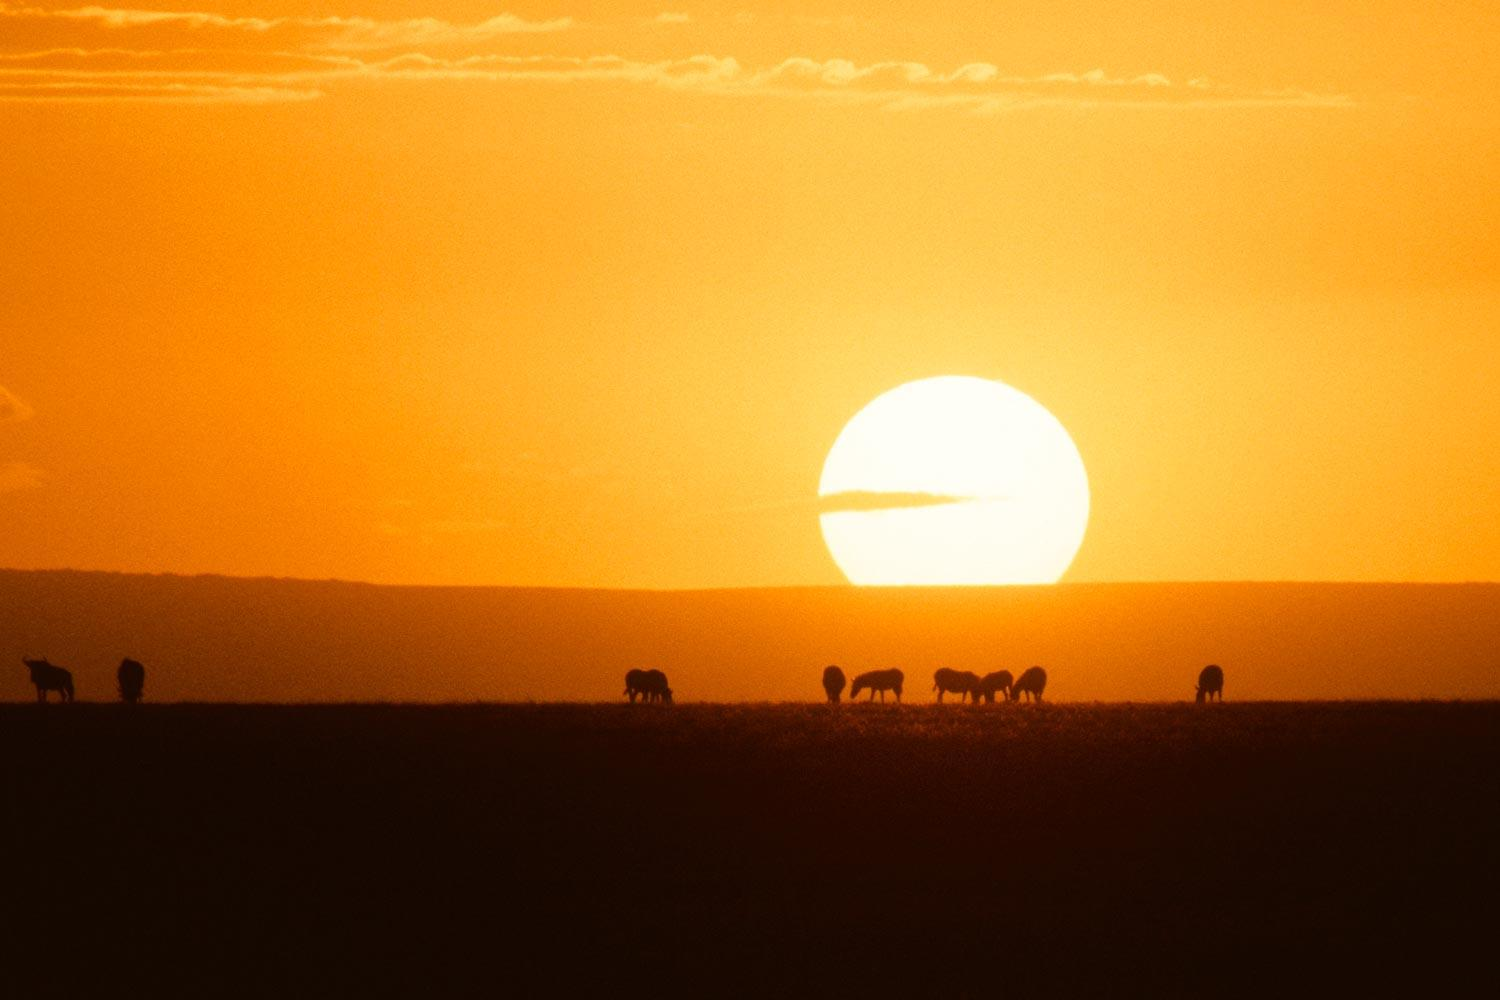 """East Africa could experience """"unbearable"""" heat by the late 21st century, a climate change projection indicates."""